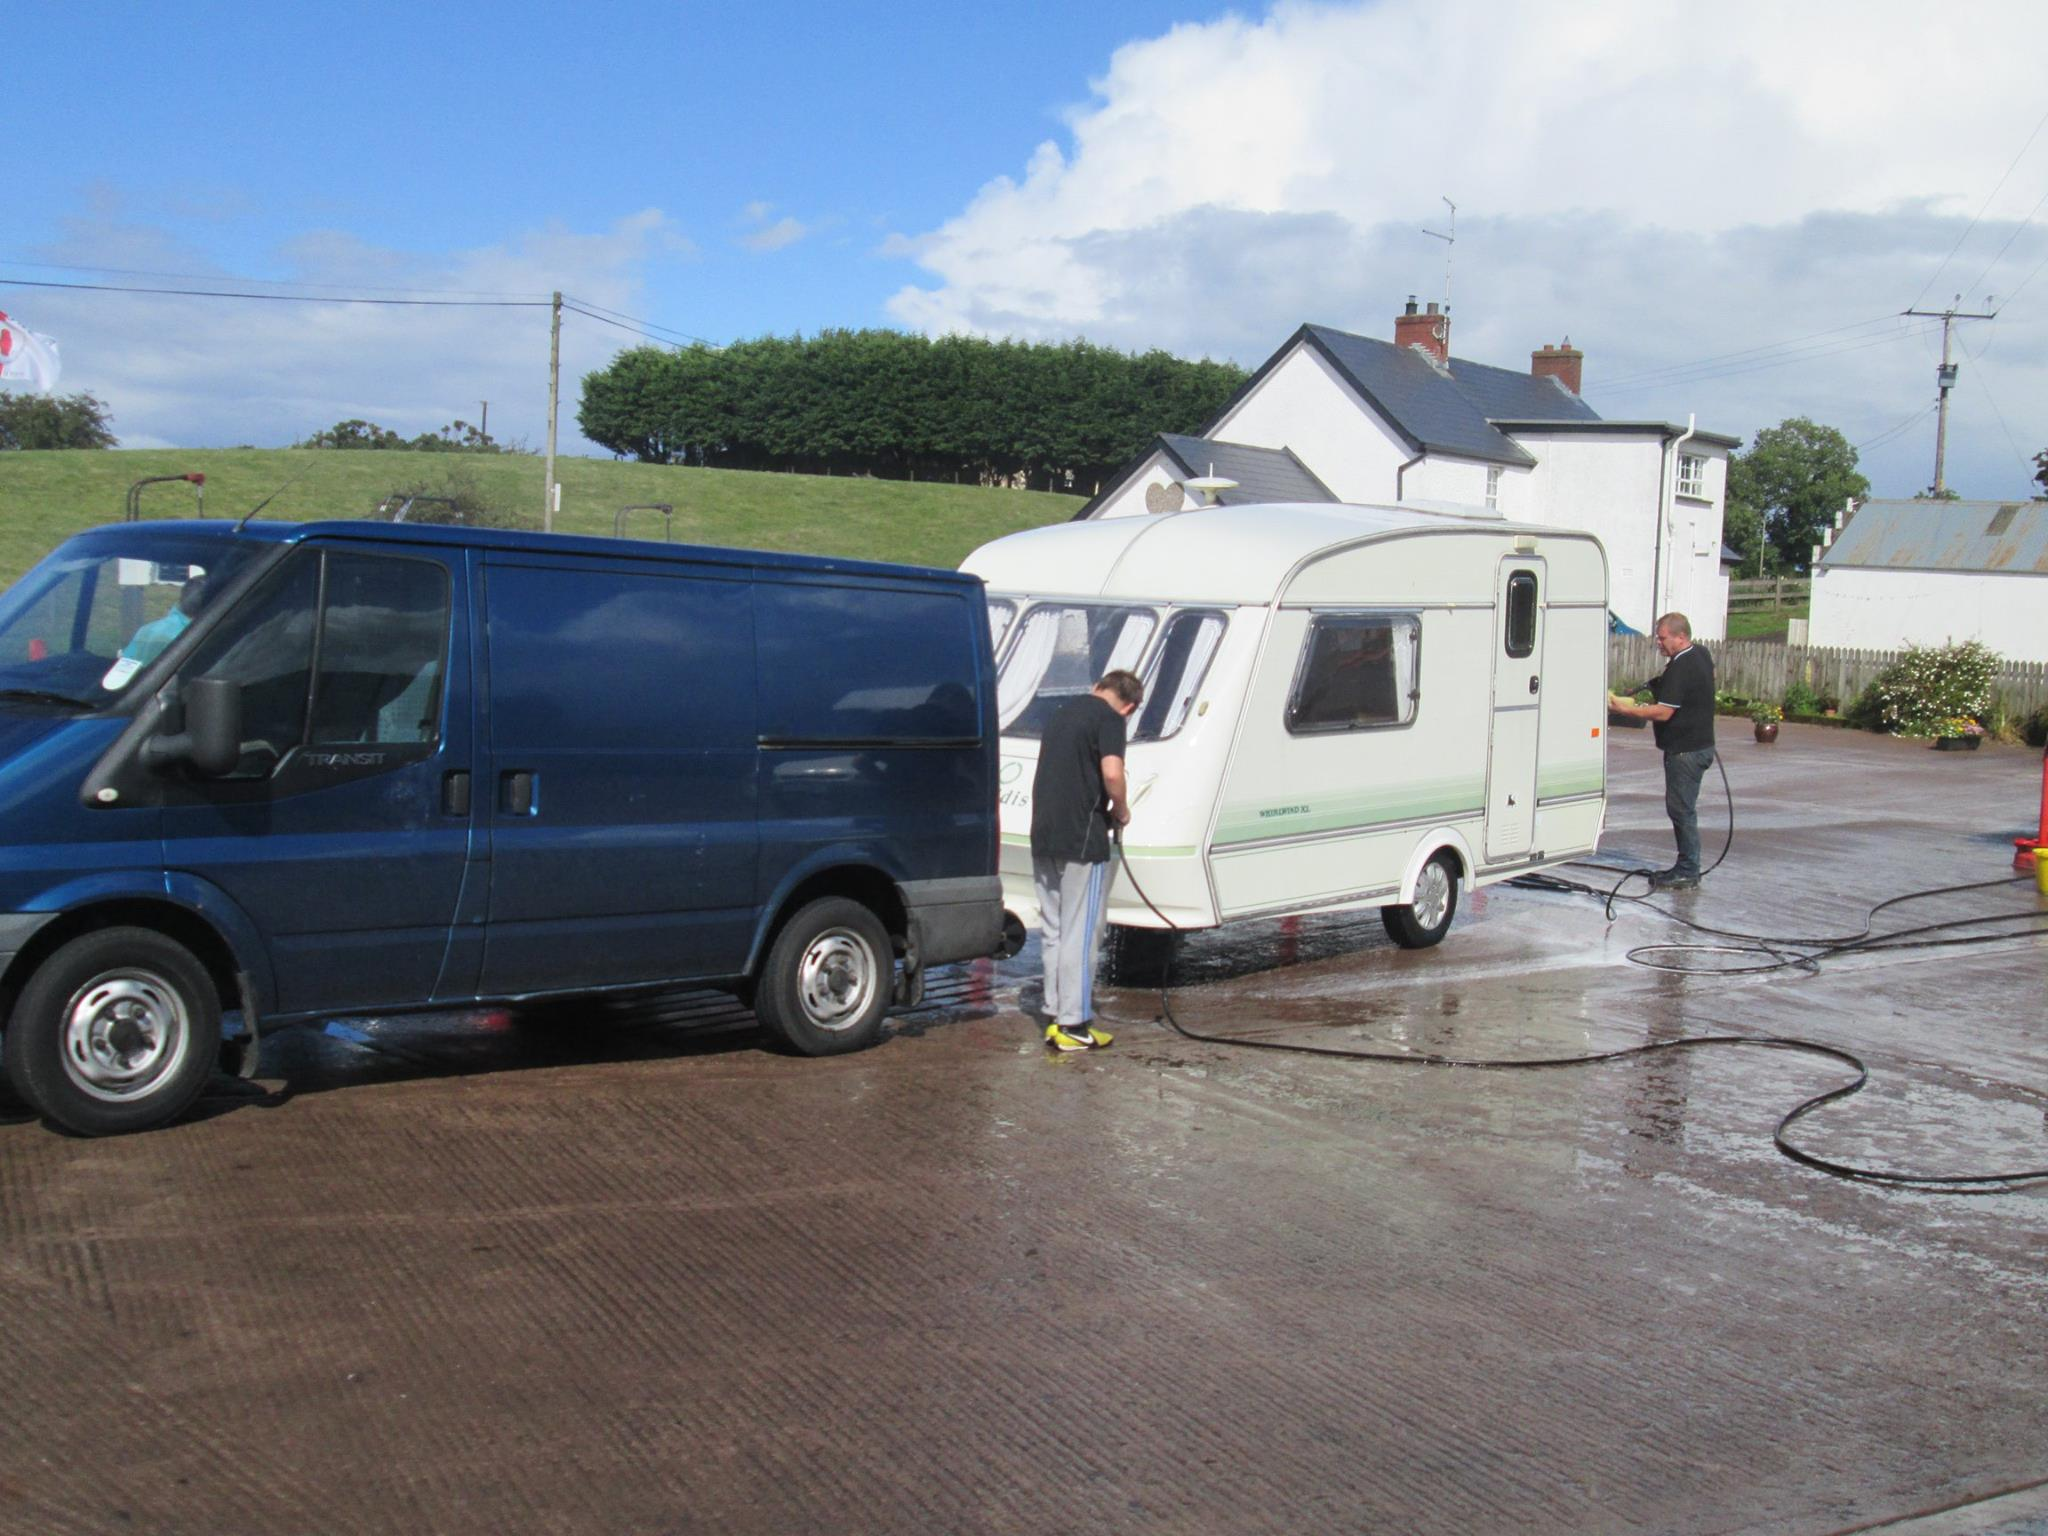 Van valeting station